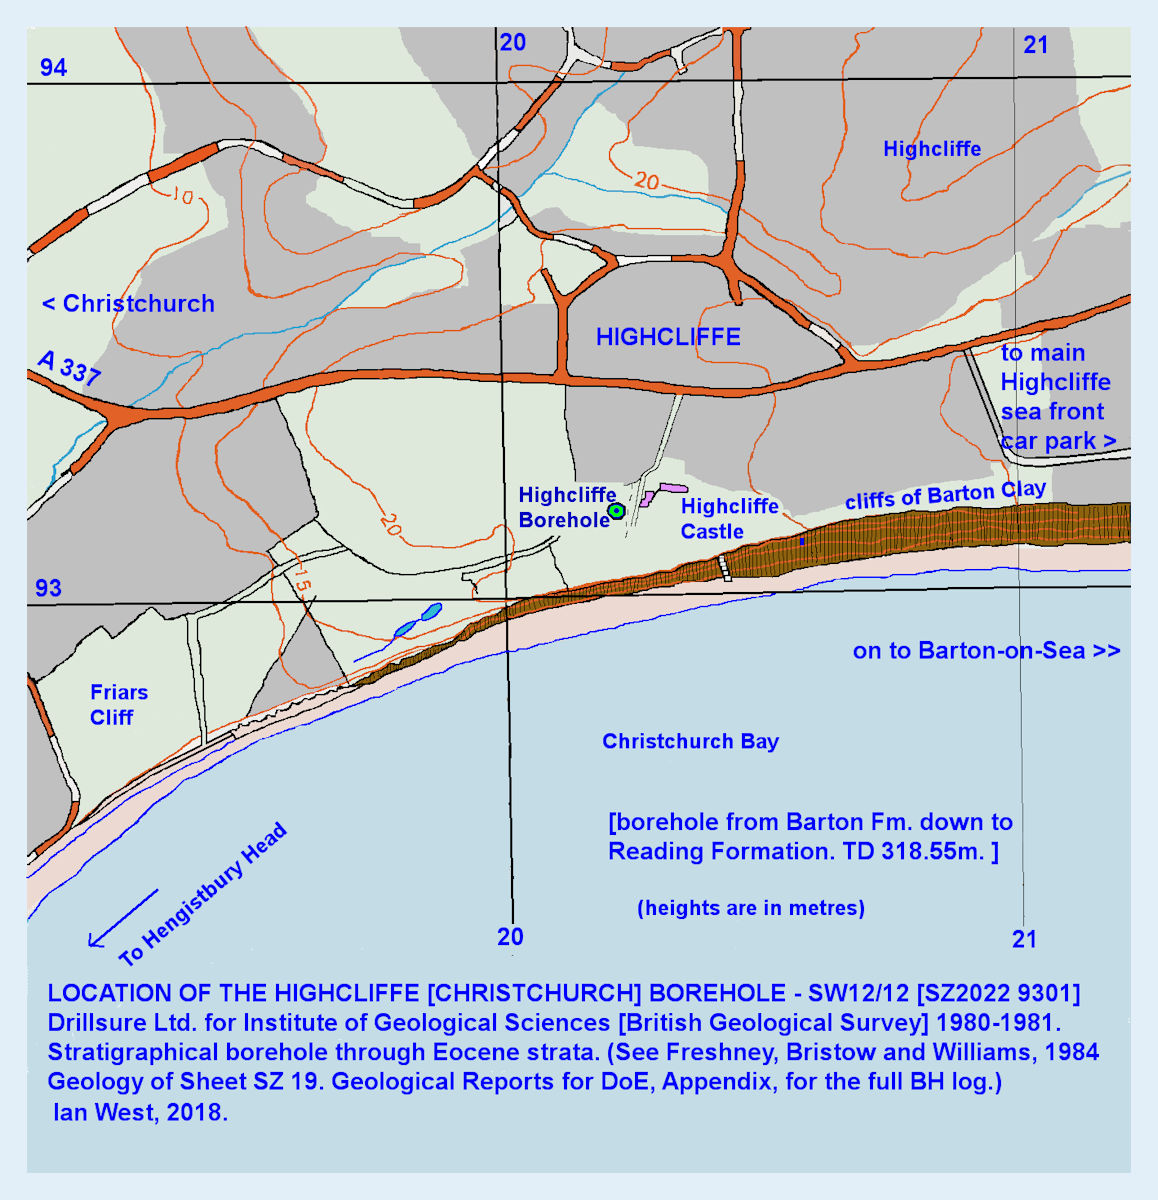 Location map for the Highcliffe or Christchurch Borehole though Eocene strata